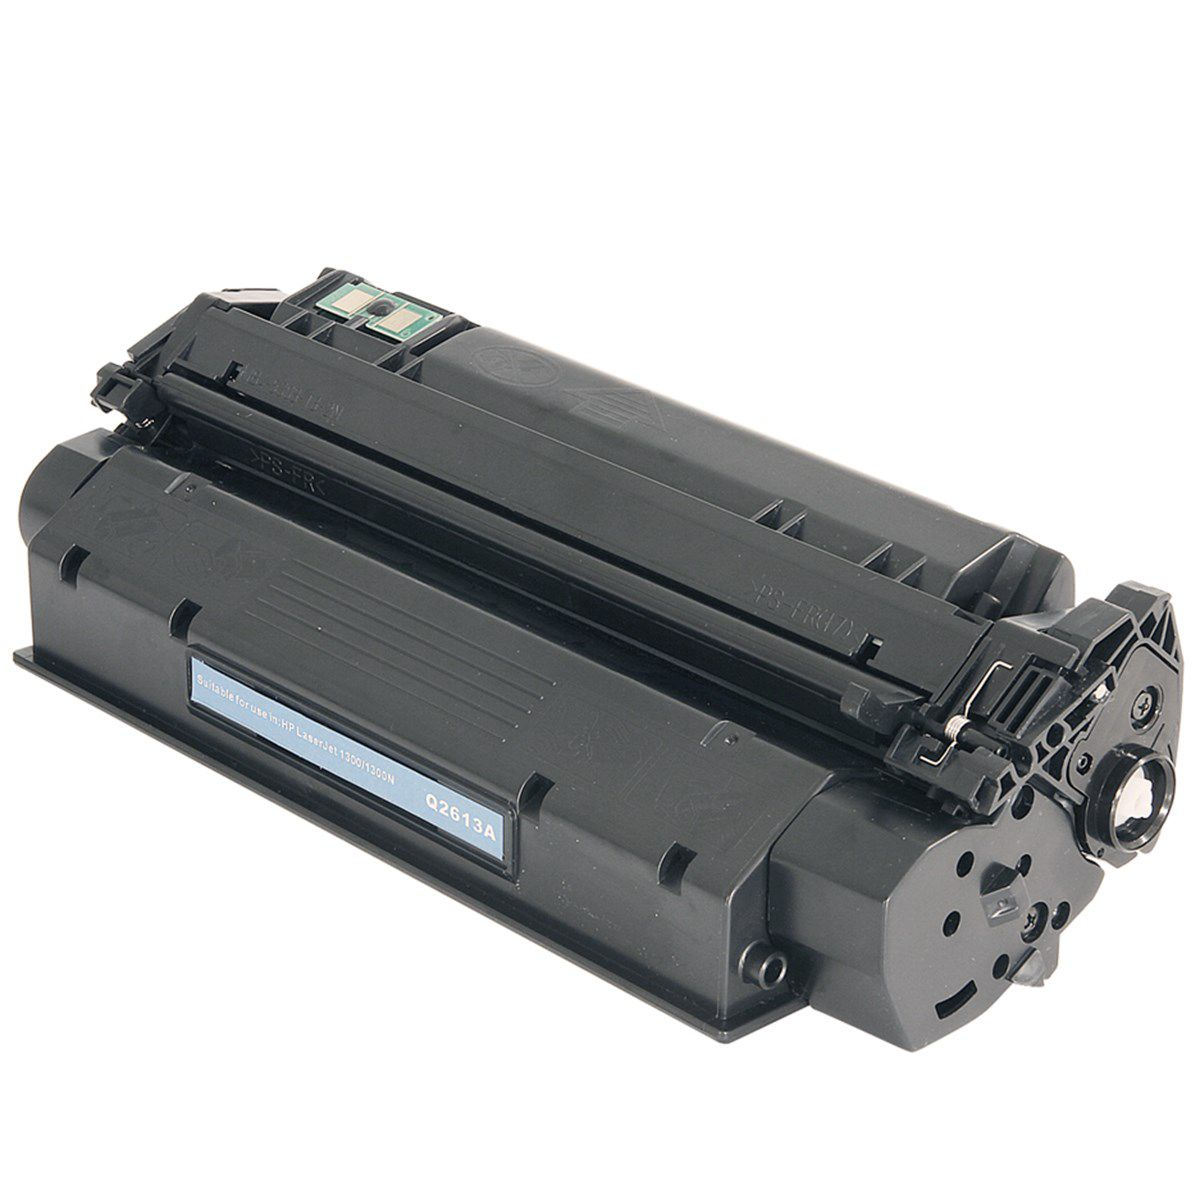 TONER HP 7115A 2613A 2624A - COMPATIVEL BYQUALY